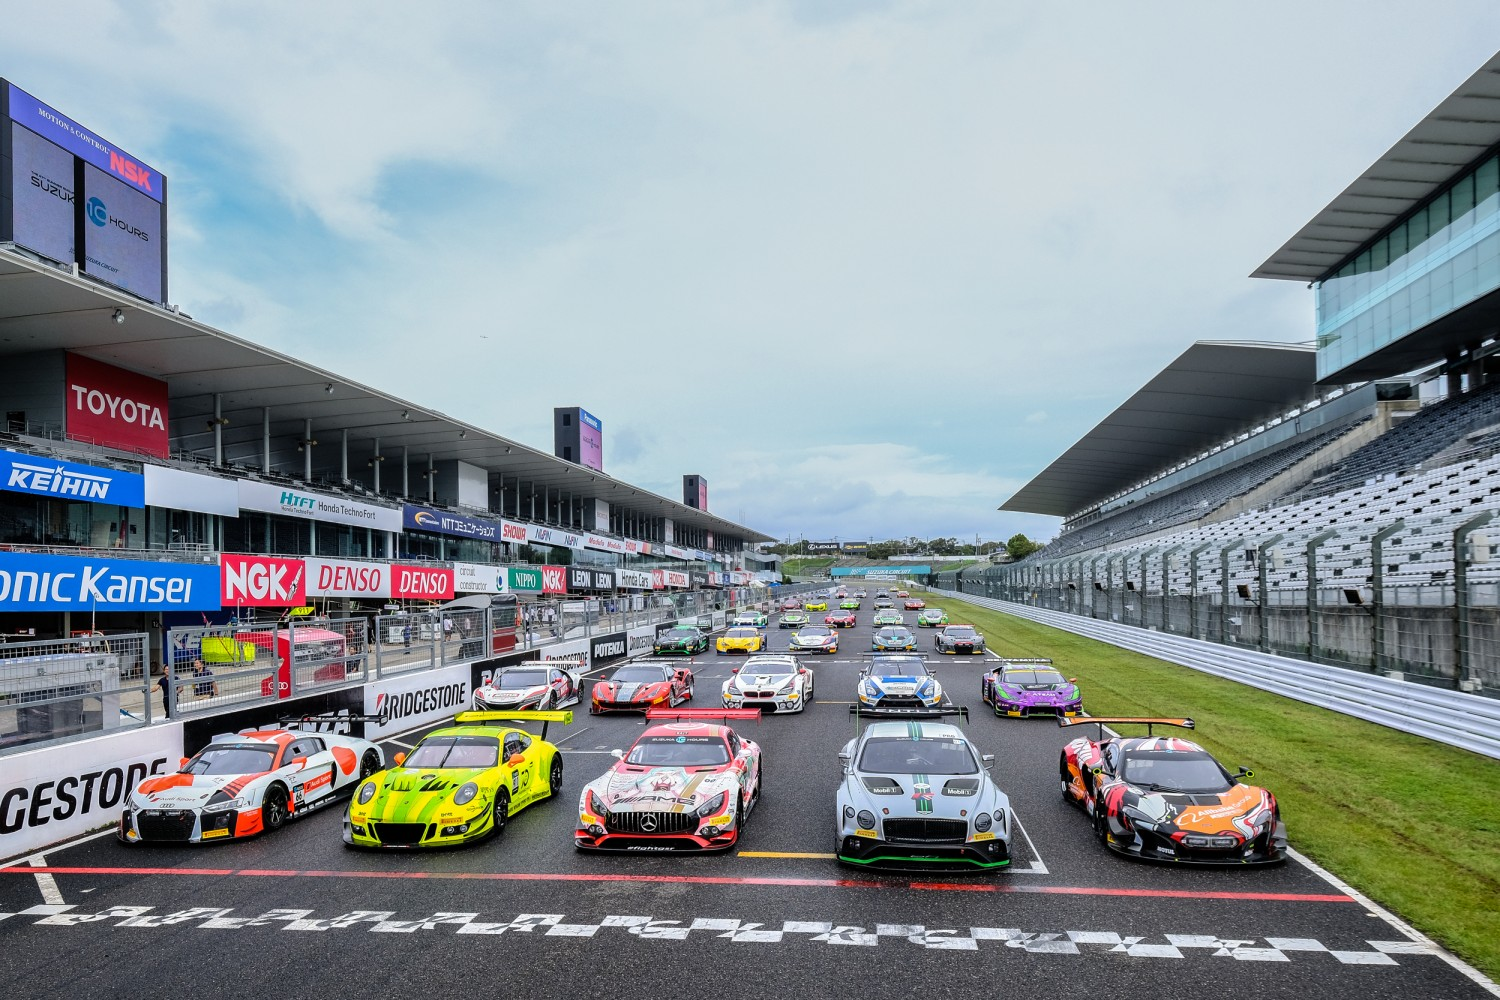 Strong Blancpain GT Series representation among Suzuka 10 Hours field